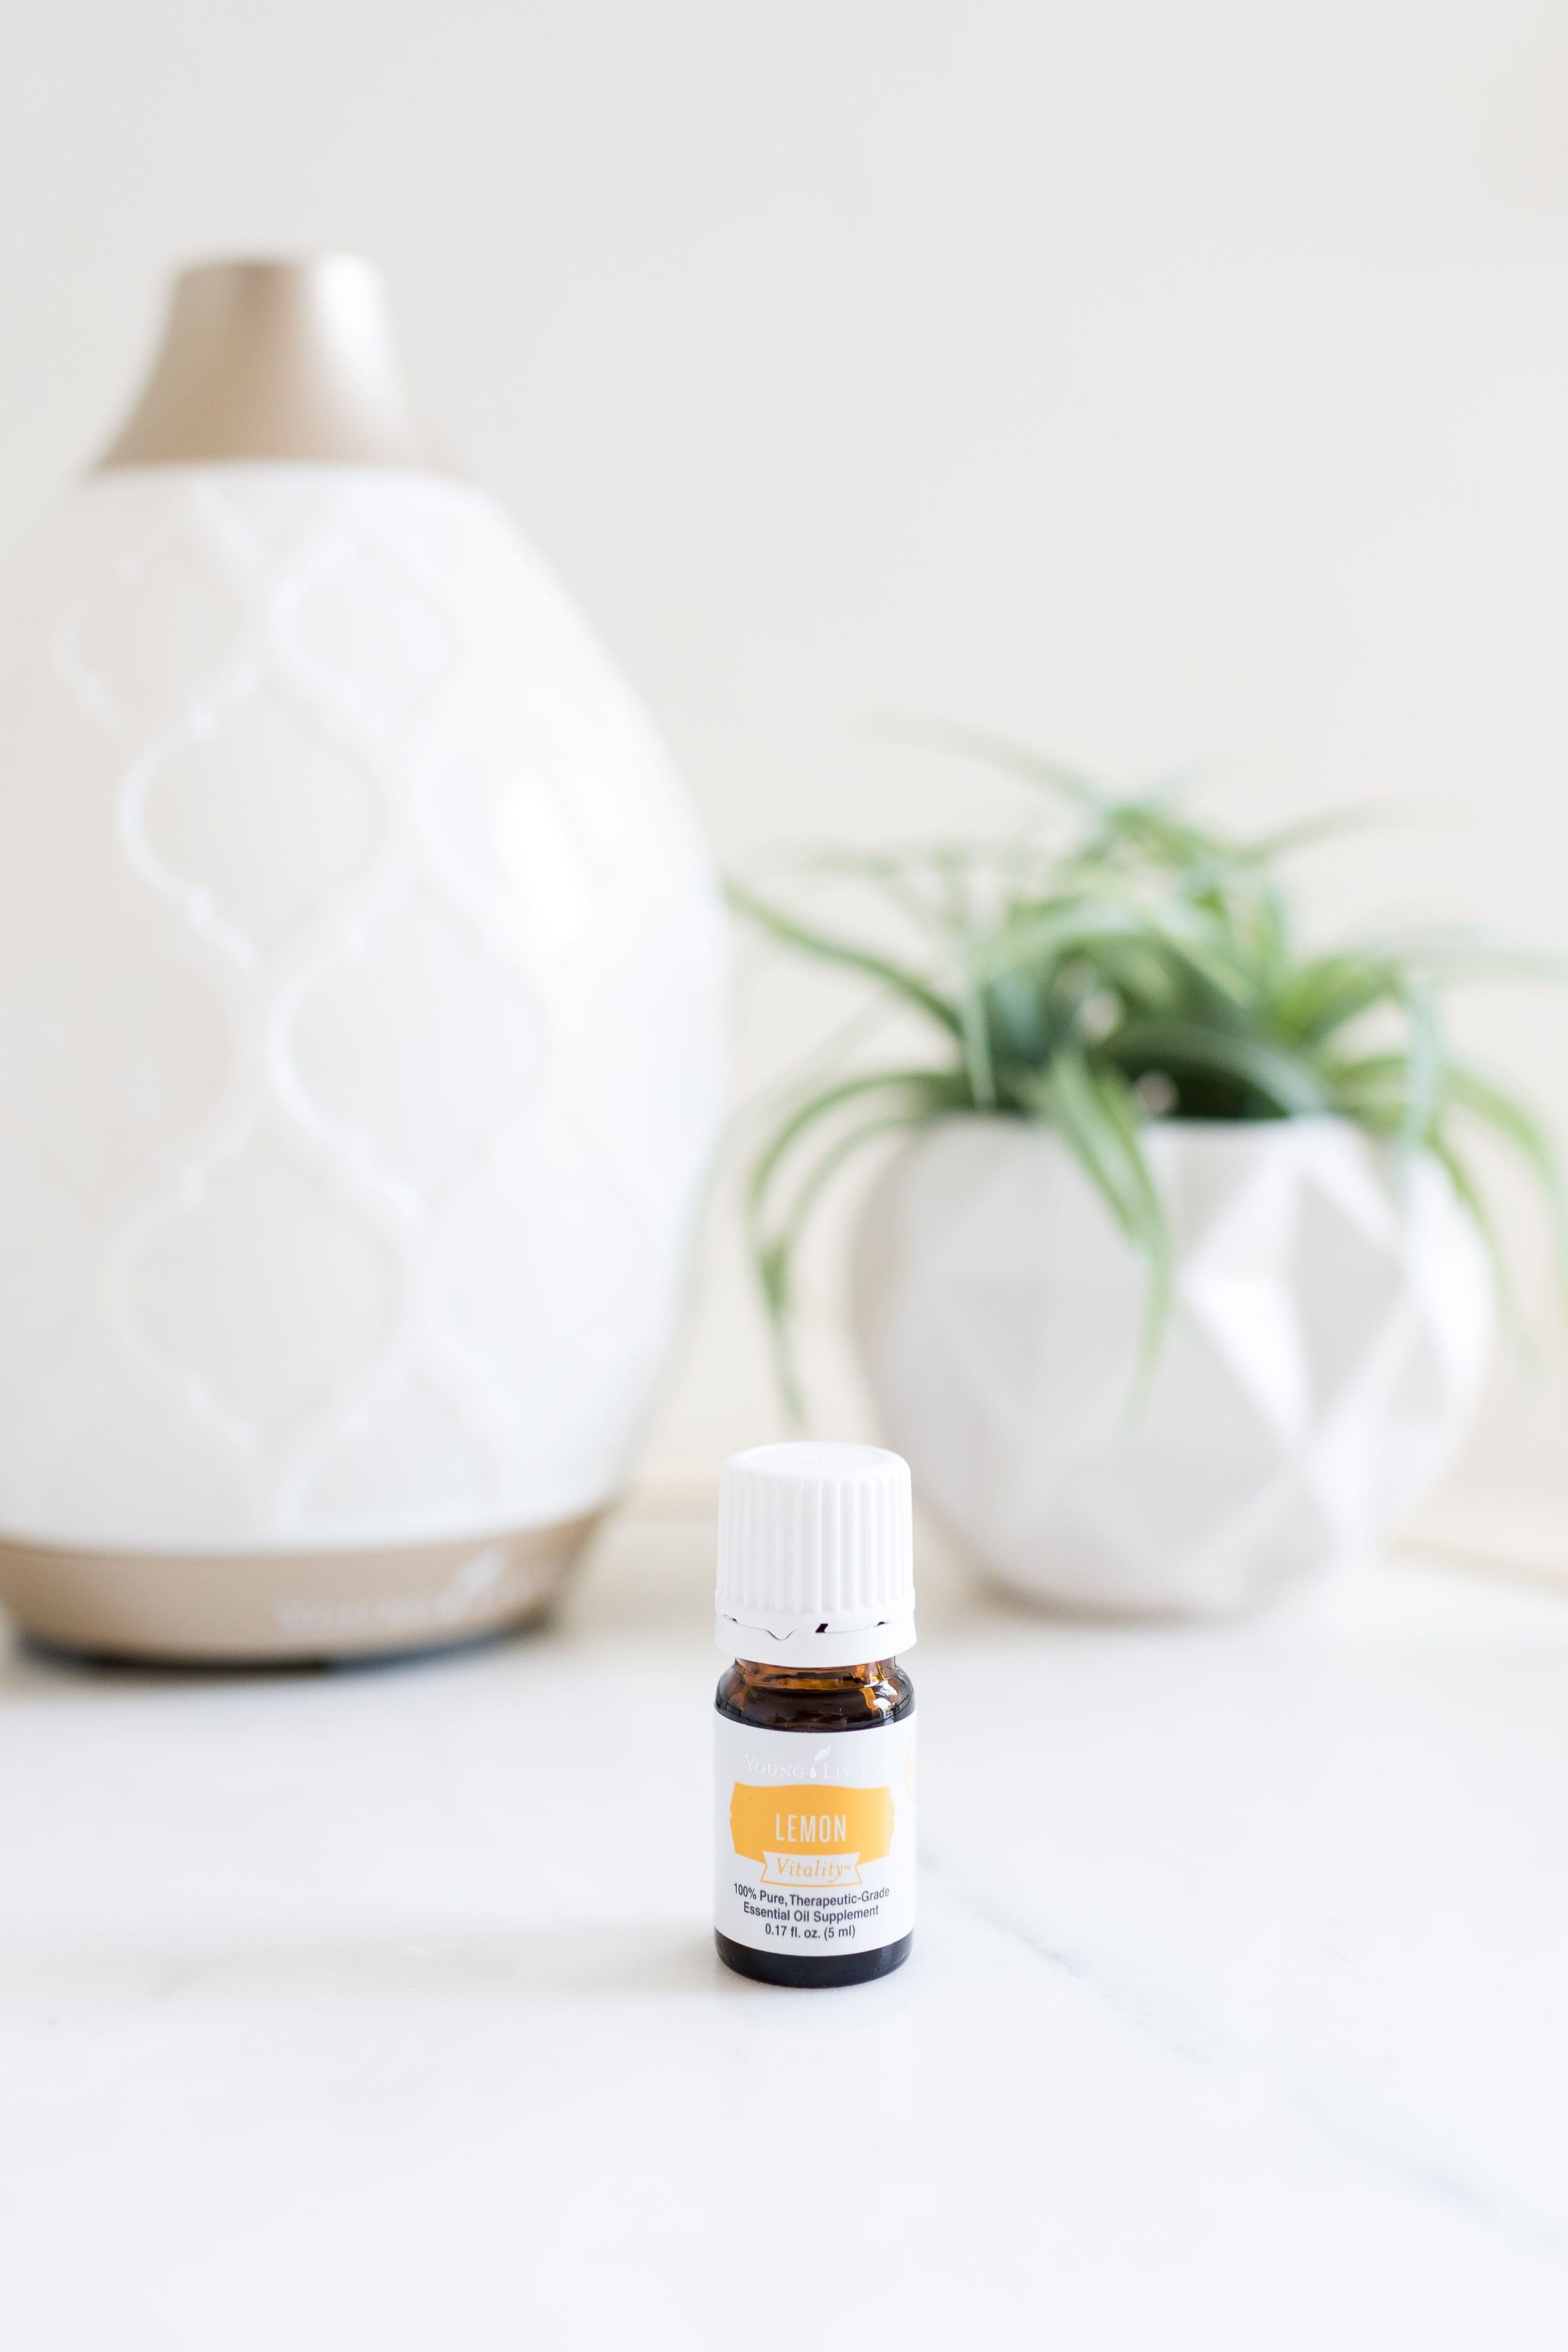 Young Living Lemon Vitality essential oil blend